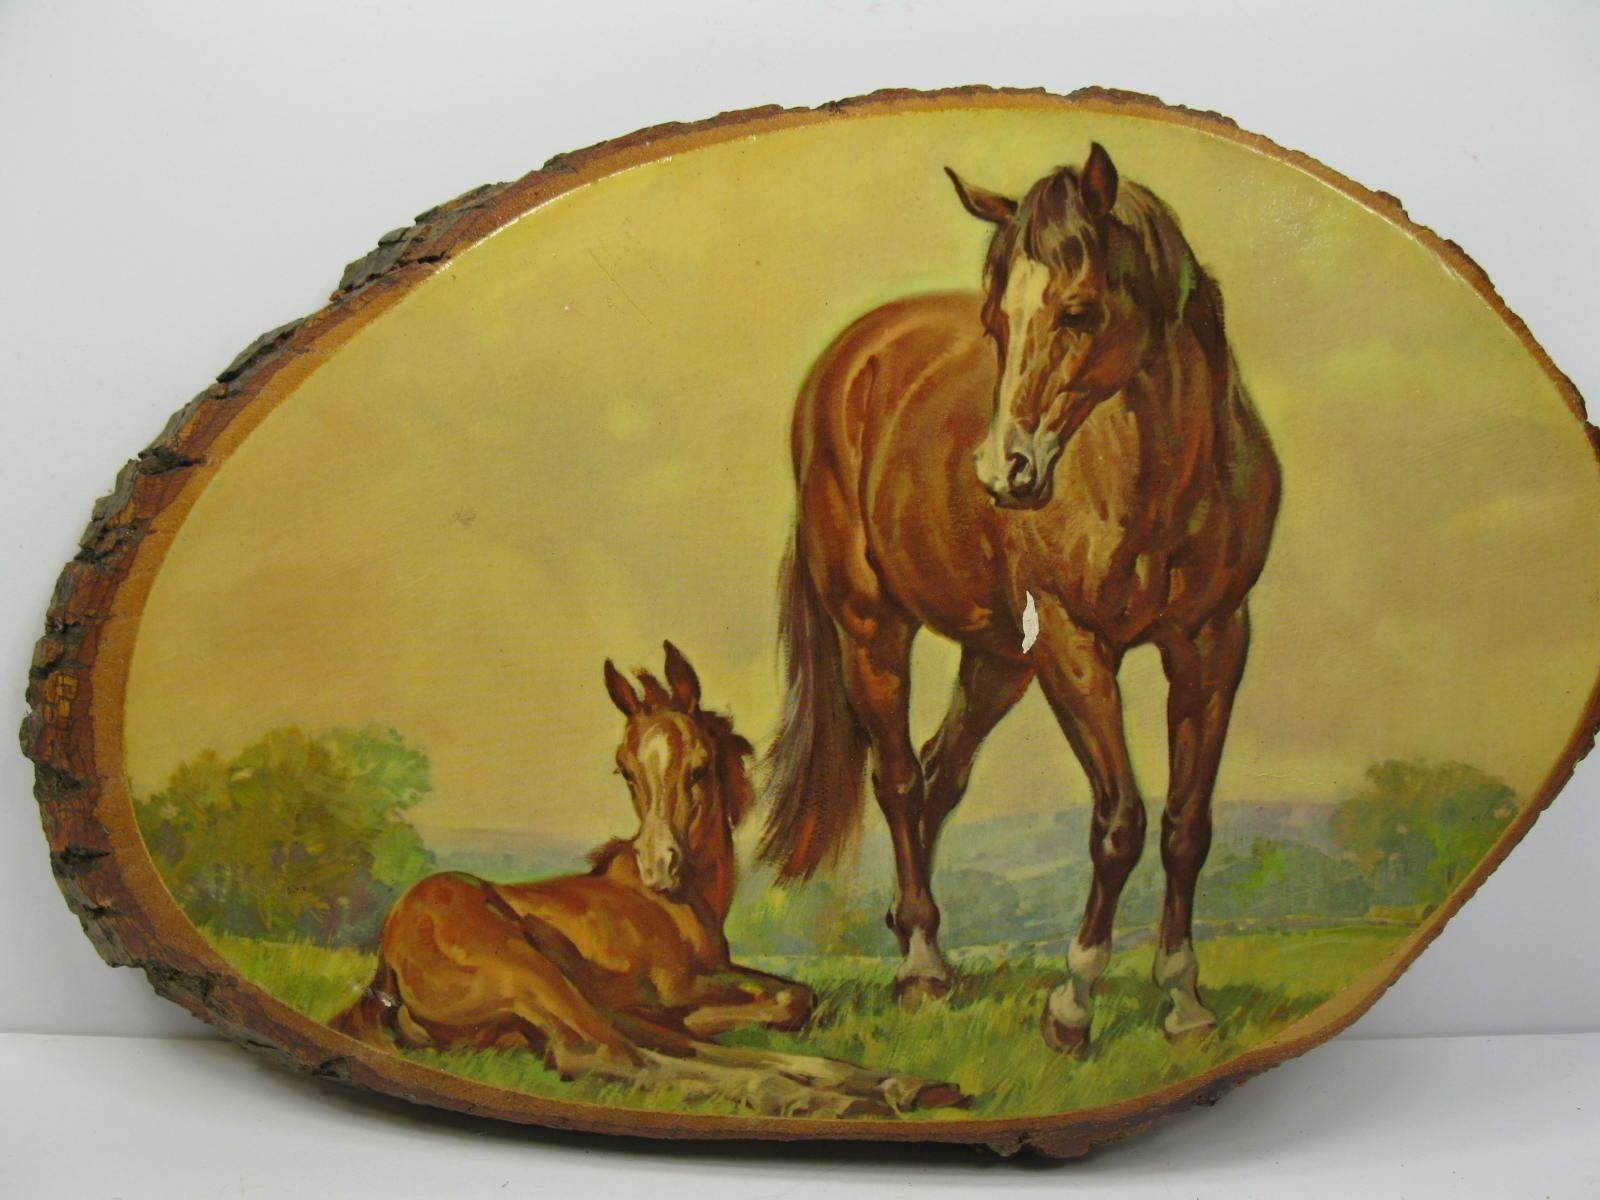 Vintage Horse Colt In Field Wood Slab Decoupage Wall Art Plaque Inside Current Decoupage Wall Art (View 26 of 30)